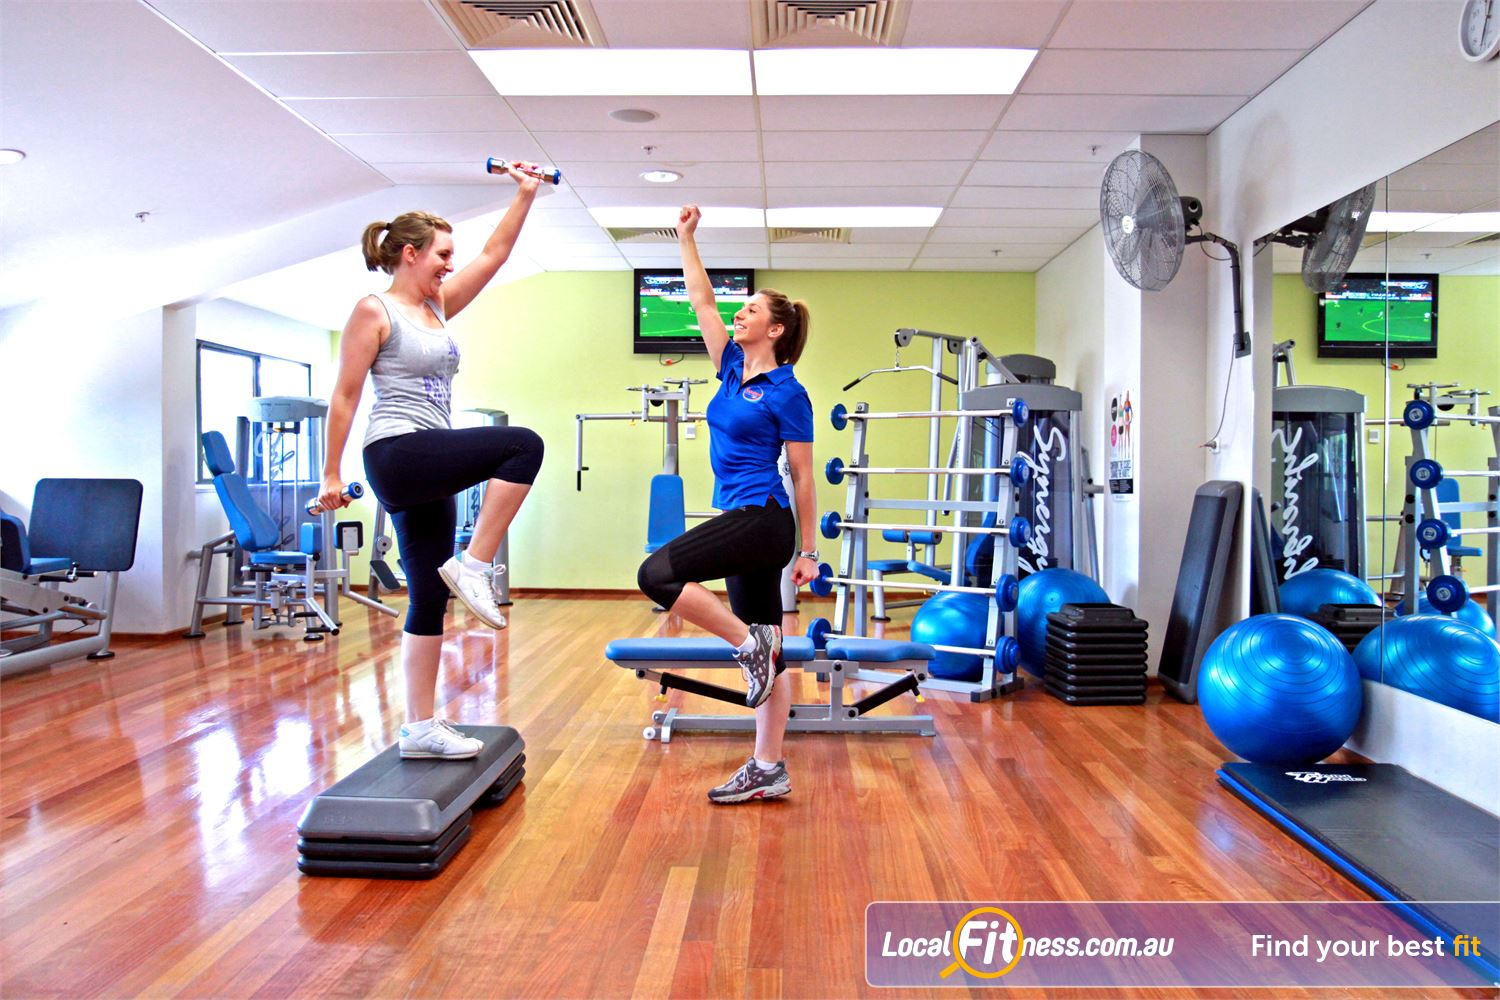 Goodlife Health Clubs Near Fitzroy North Adelaide gym instructors can tailor a high energy weight-lossladies program to suit.